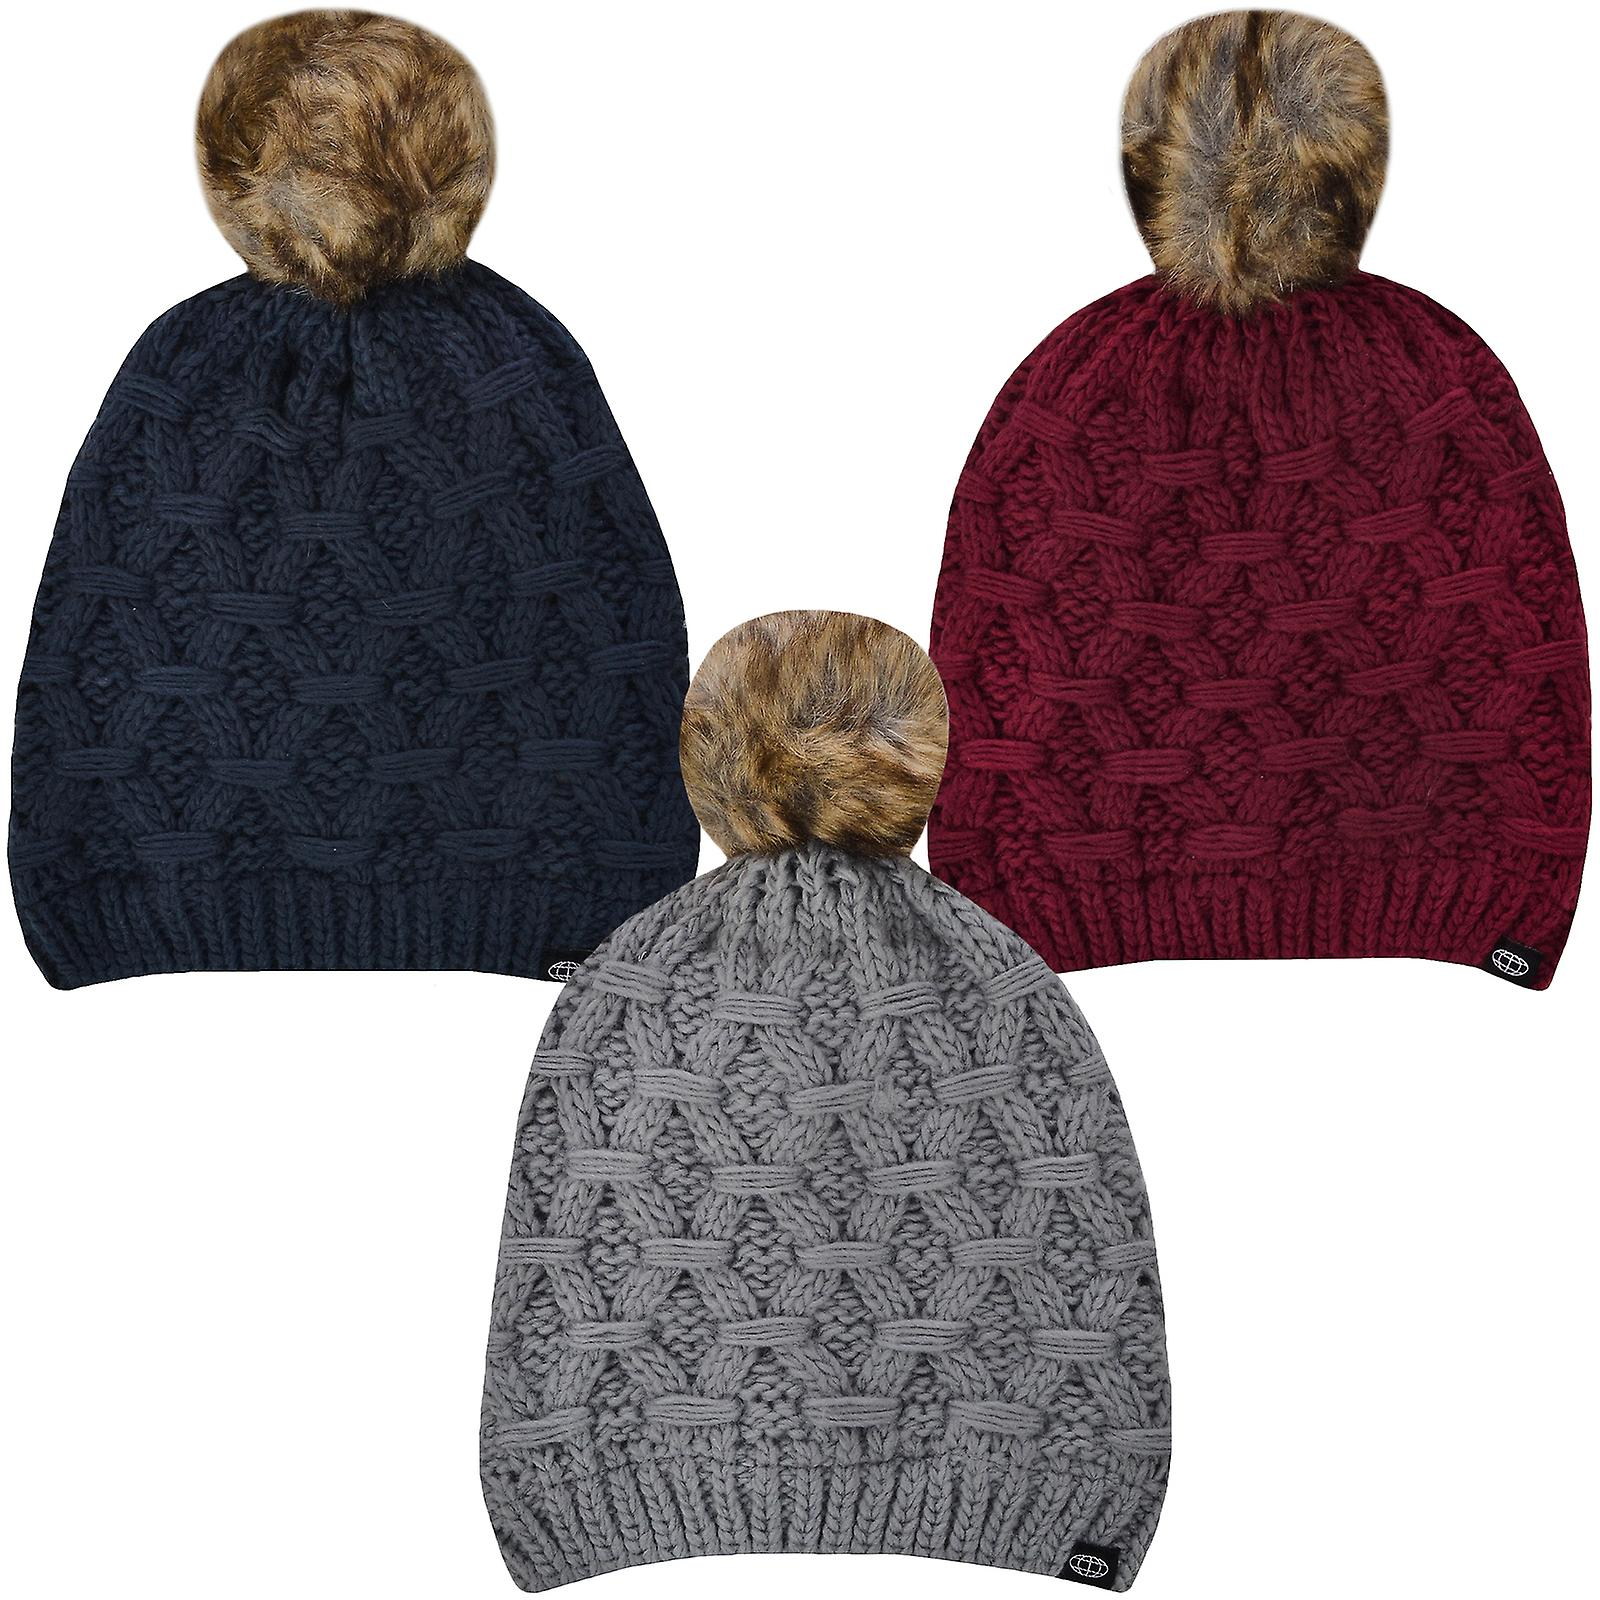 ProClimate Womens Thinsulate Waterproof Winter Knitted Pom Pom Beanie  Bobble Hat 549fcaf6919